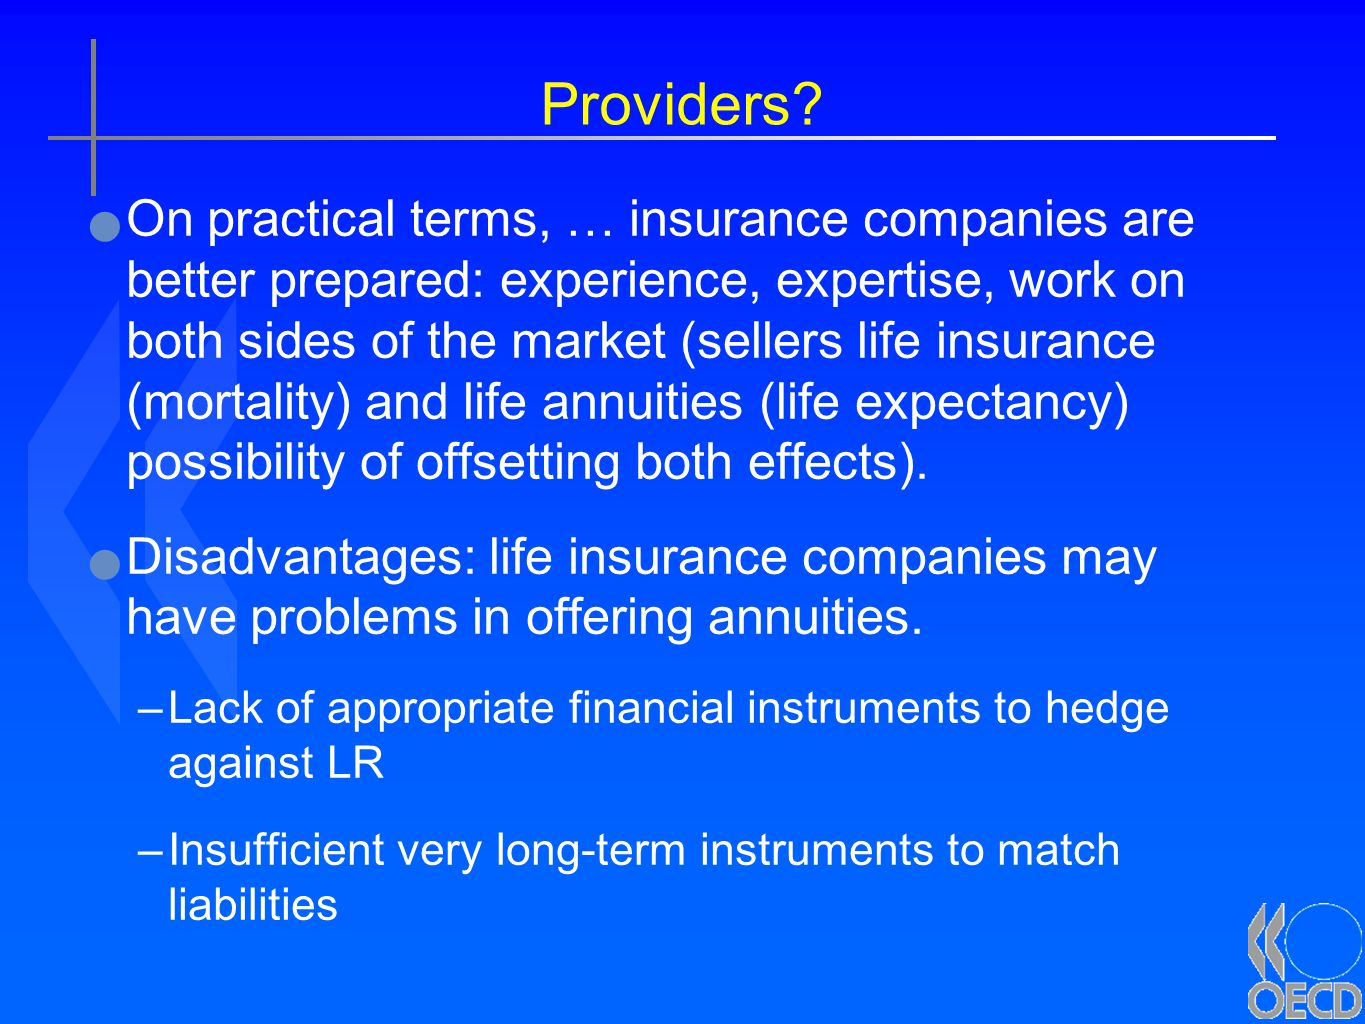 Providers? On practical terms, … insurance companies are better prepared: experience, expertise, work on both sides of the market (sellers life insura